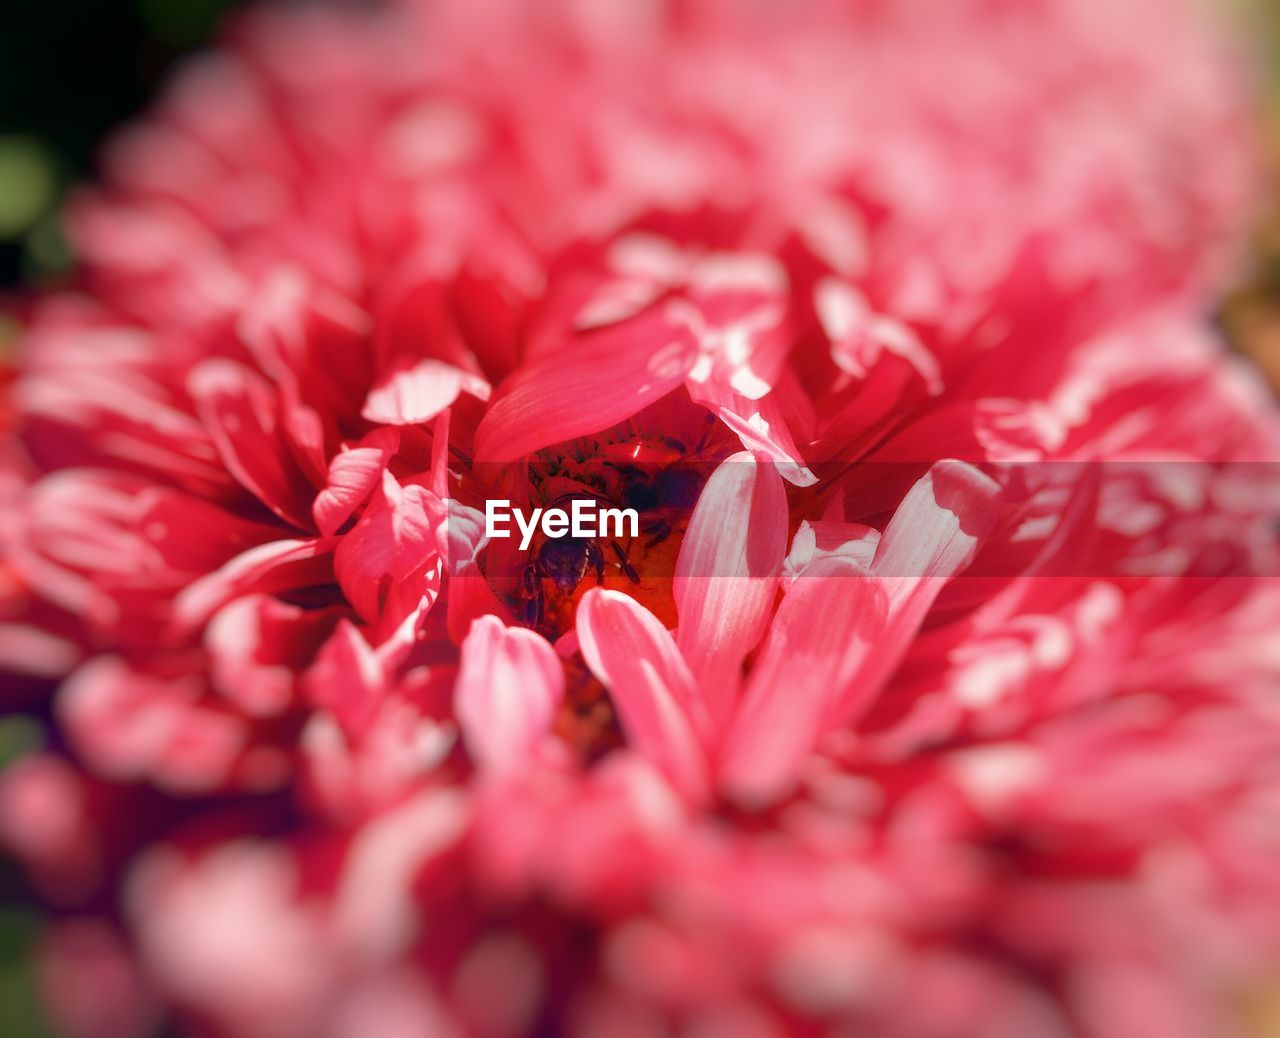 flower, petal, fragility, nature, beauty in nature, flower head, freshness, red, no people, selective focus, growth, close-up, rose - flower, plant, outdoors, backgrounds, day